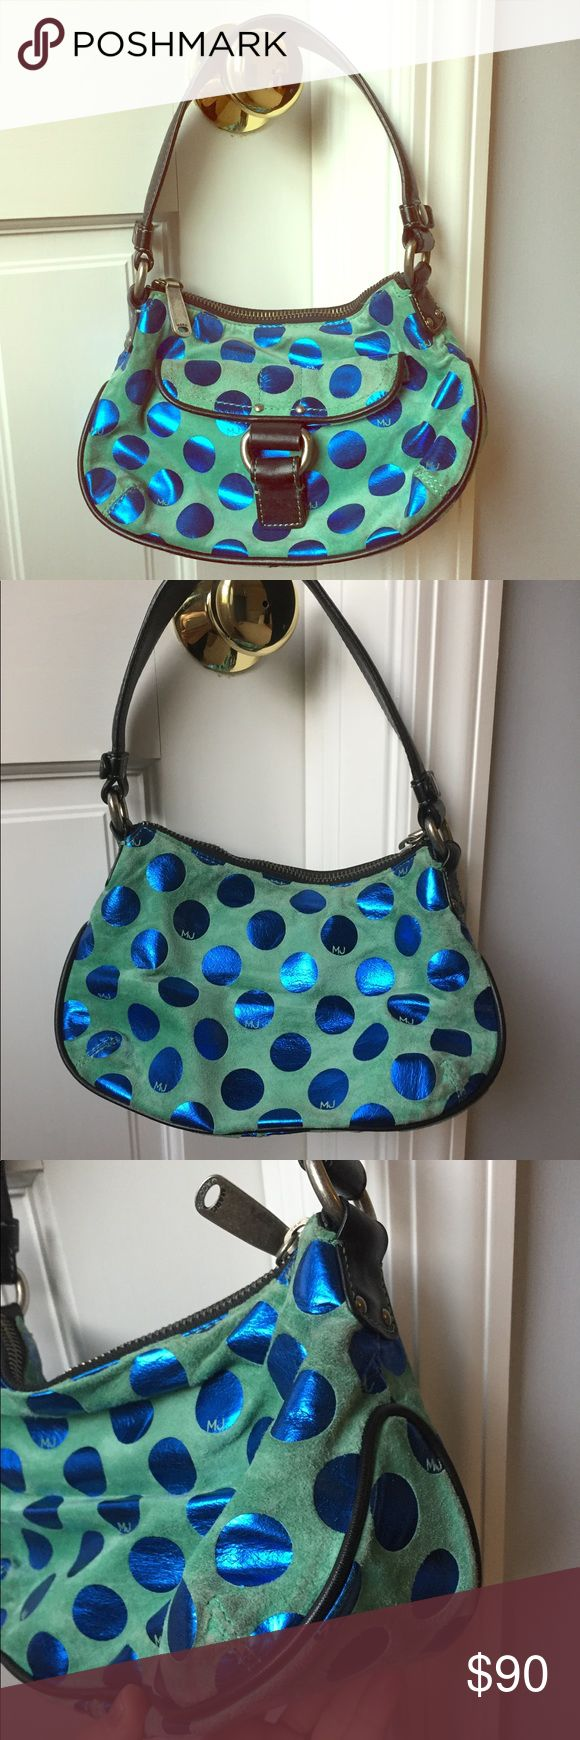 Marc Jacobs green and blue polka dot handbag Authentic Marc Jacobs Bag is covered mostly in green suede with royal blue metallic polkadots with the initials MJ. The bag is outlined in navy blue leather, shoulder straps are also navy blue leather. Silvertone hardware with Marc Jacobs. Bag has some sign of usage but overall it is in fantastic condition, it is a very nice and rare handbag. Some cleaning will make it just perfect.  Will include the original duster bag. Marc Jacobs Bags Shoulder…